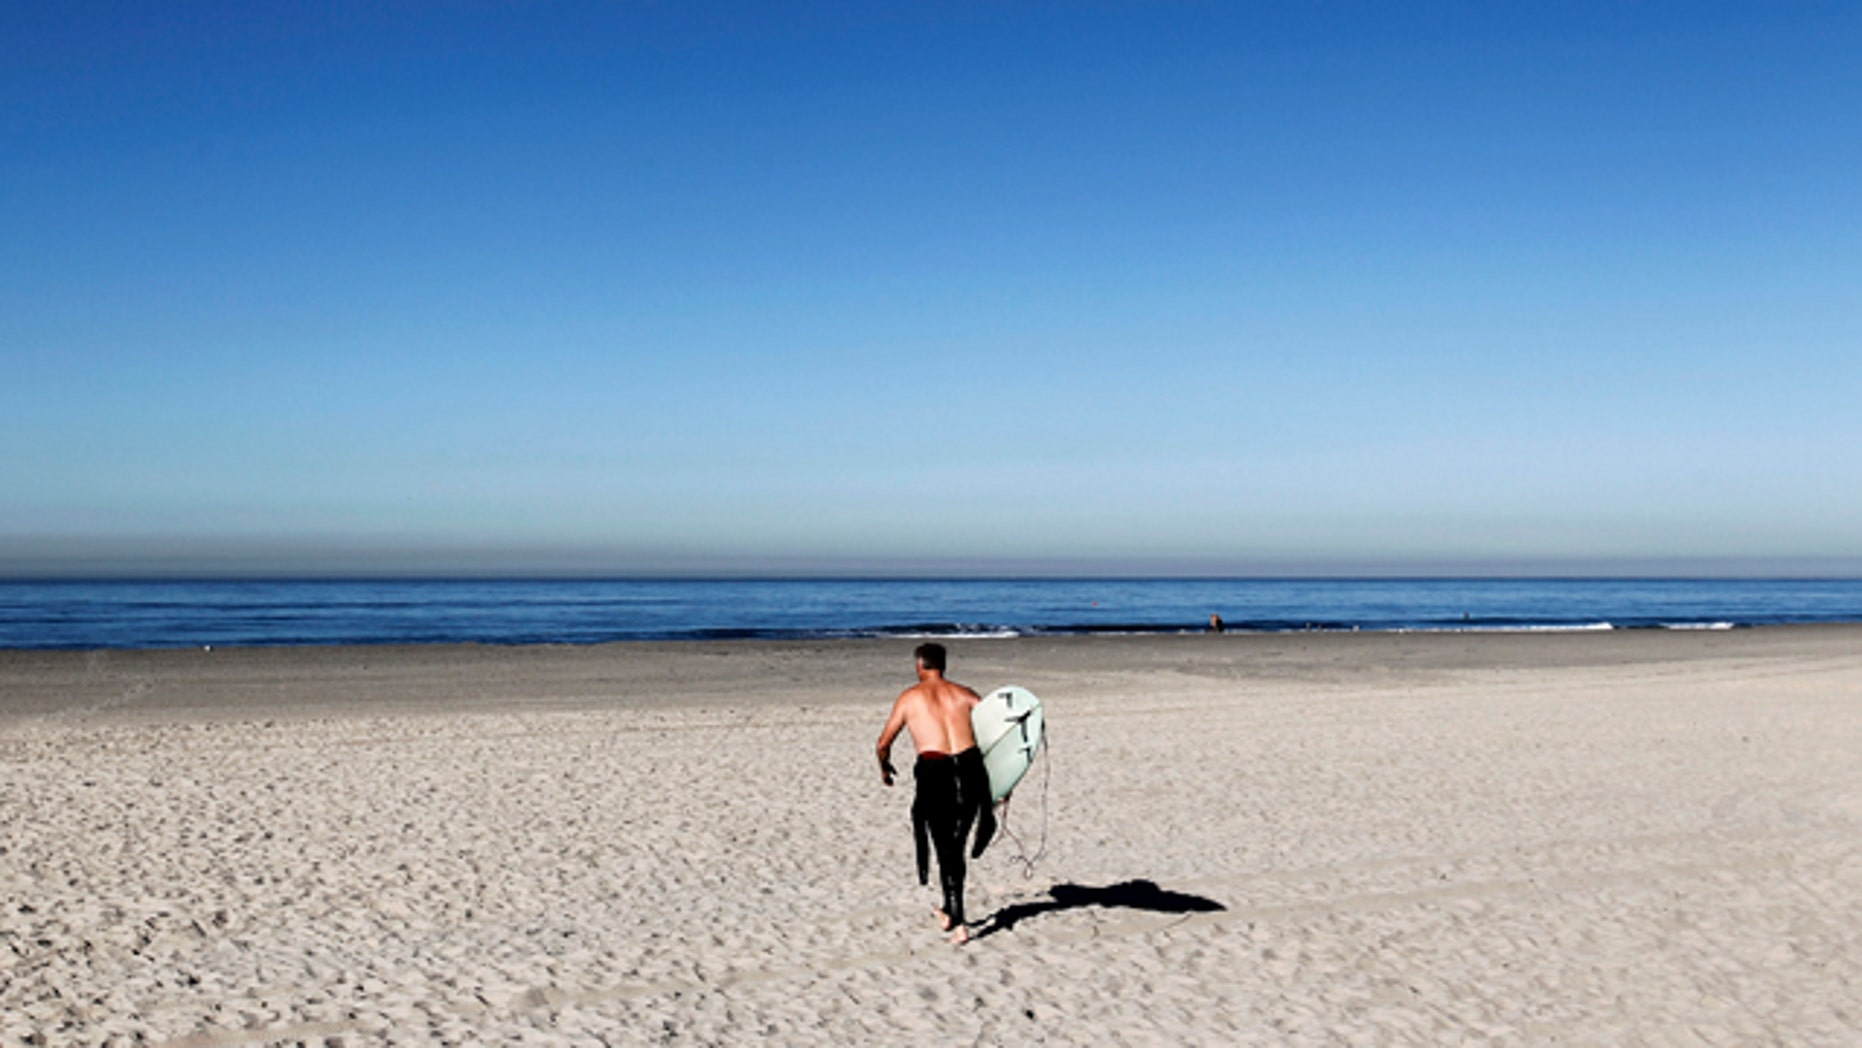 Dec. 13, 2010: A lone surfer walks out to ride waves at Pacific Beach during a warm weather spell in San Diego, Calif.